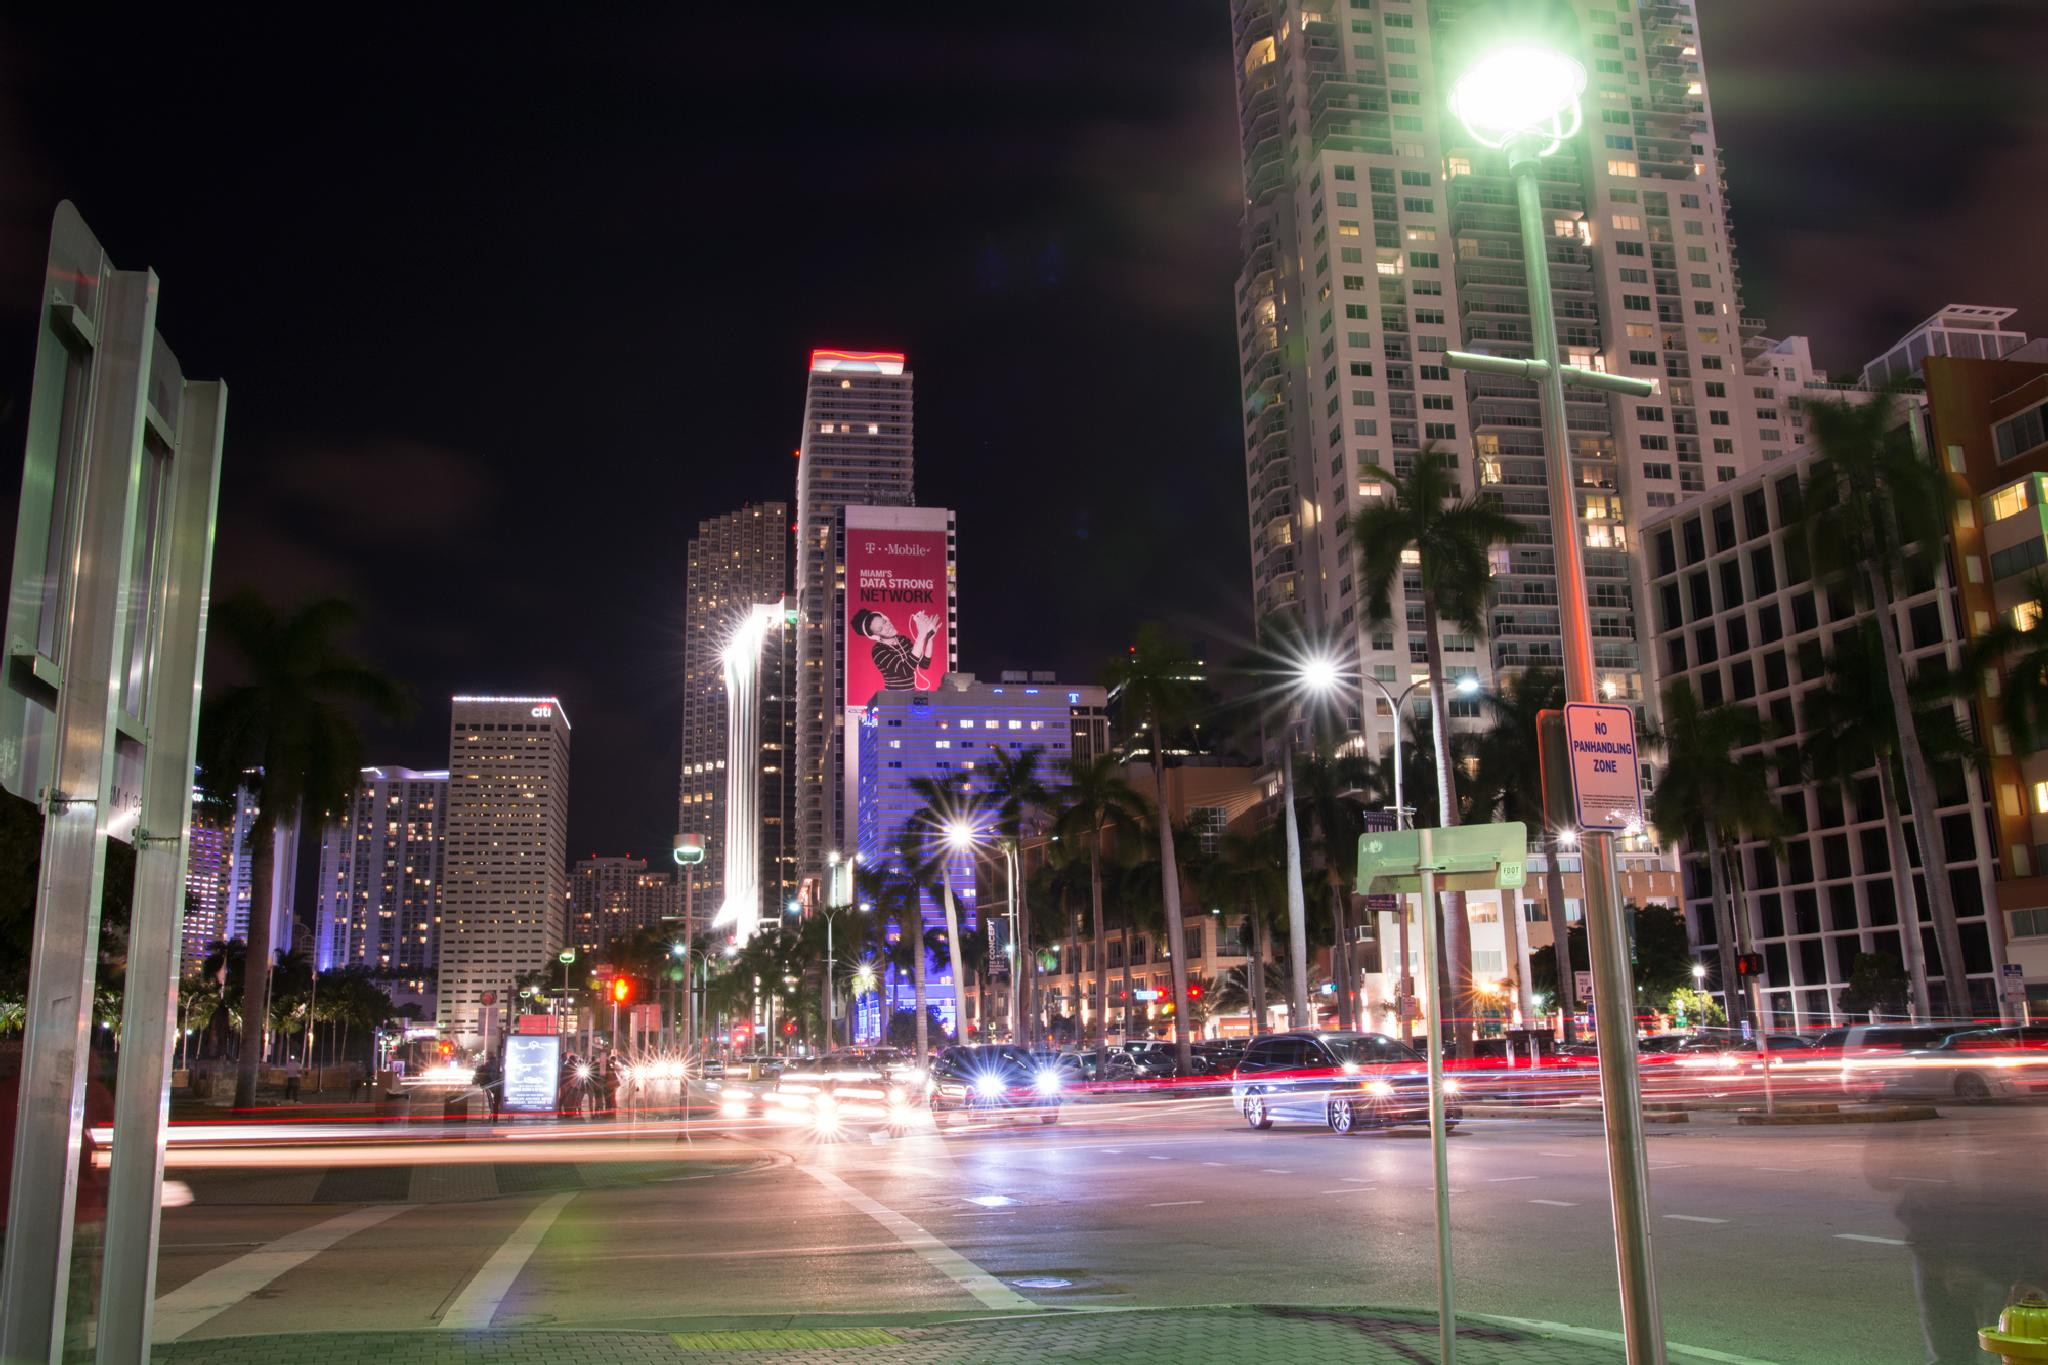 Miami Night life. by mtmoodyphotography